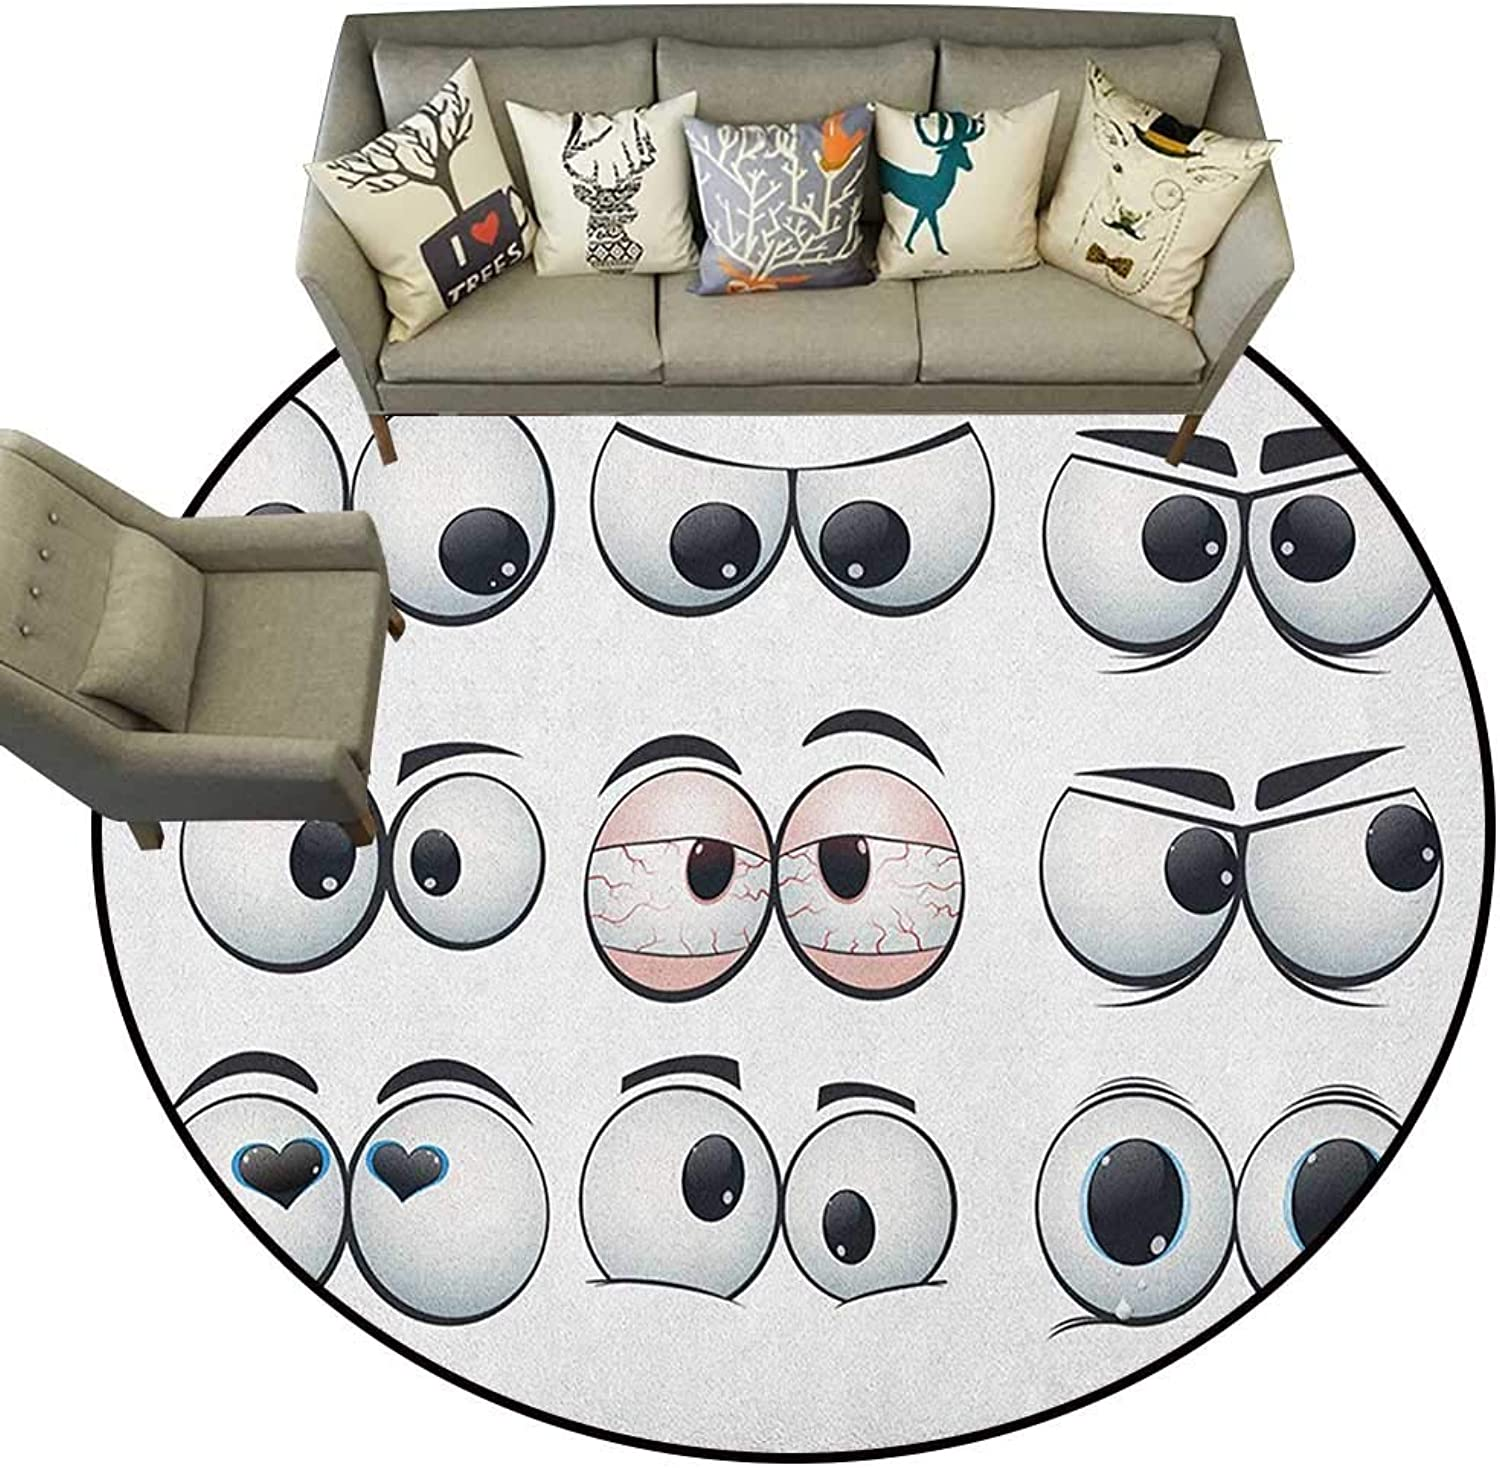 Eye,American Floor mats Collection of Cartoon Expression Eyes Showing Different Emotions and Views D36 Home Bedroom Floor Mats